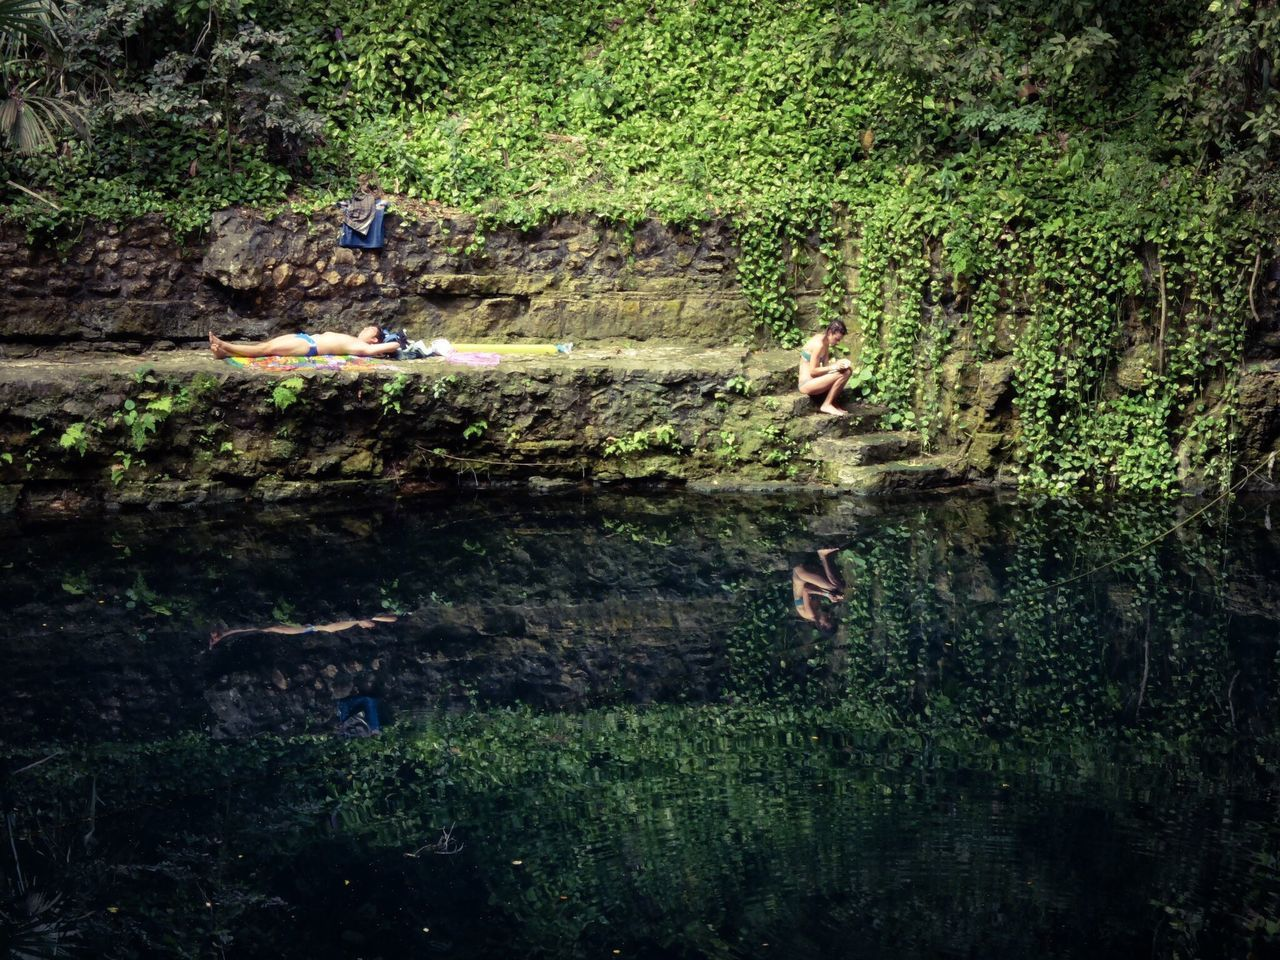 Water Nature Outdoors Day Growth Tranquil Scene Swimming Tree Beauty In Nature Cenote Zací Mexico Yucatan Mexico Peace And Quiet Paradise Reflection